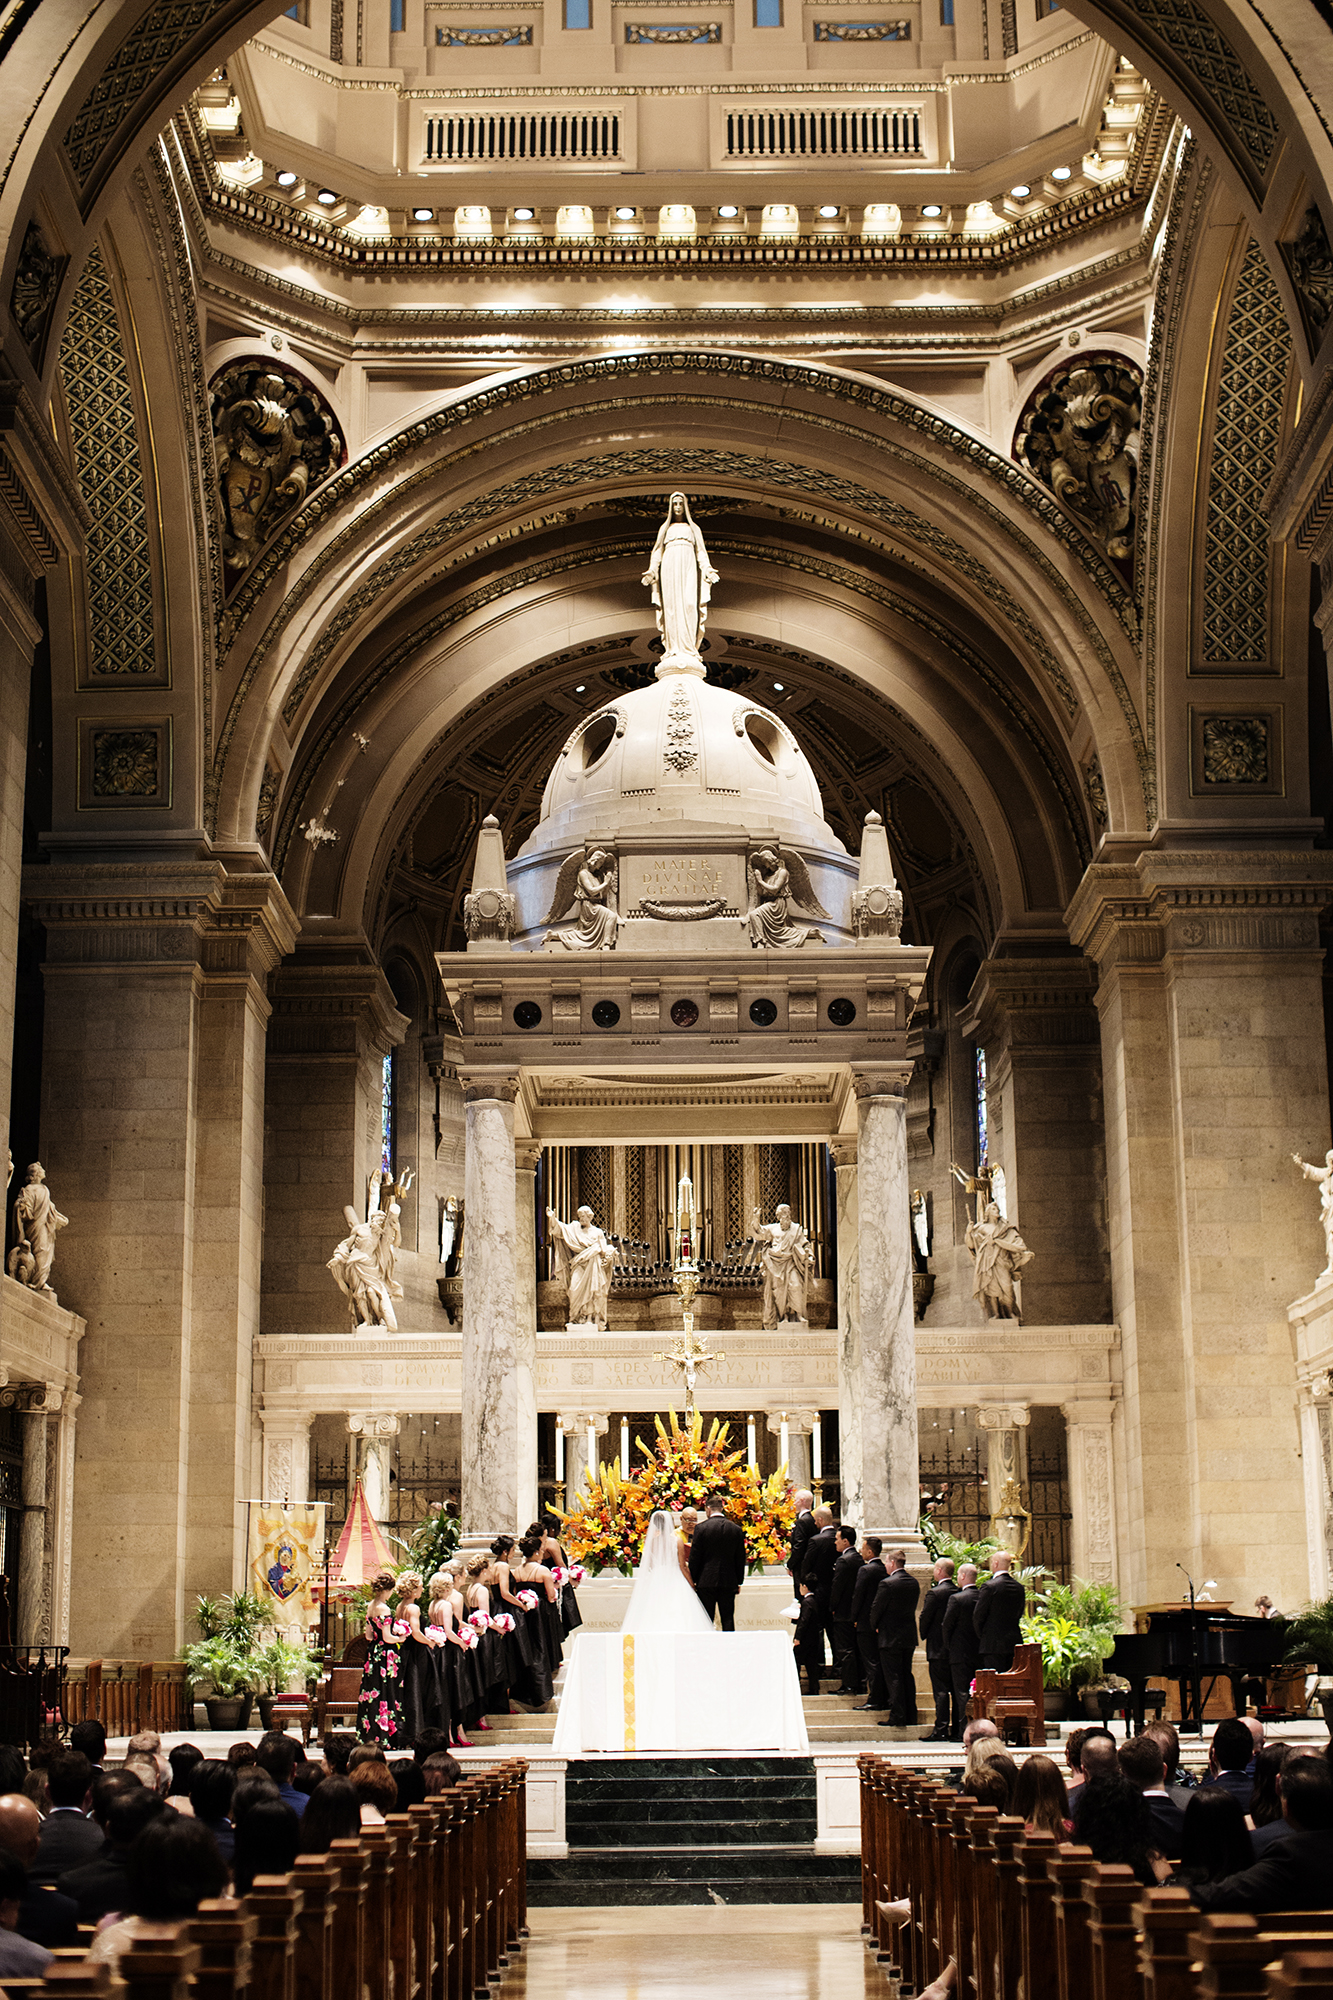 Basilica of St. Mary Wedding Photos | Photography by Photogen Inc. | Eliesa Johnson | Based in Minneapolis, Minnesota